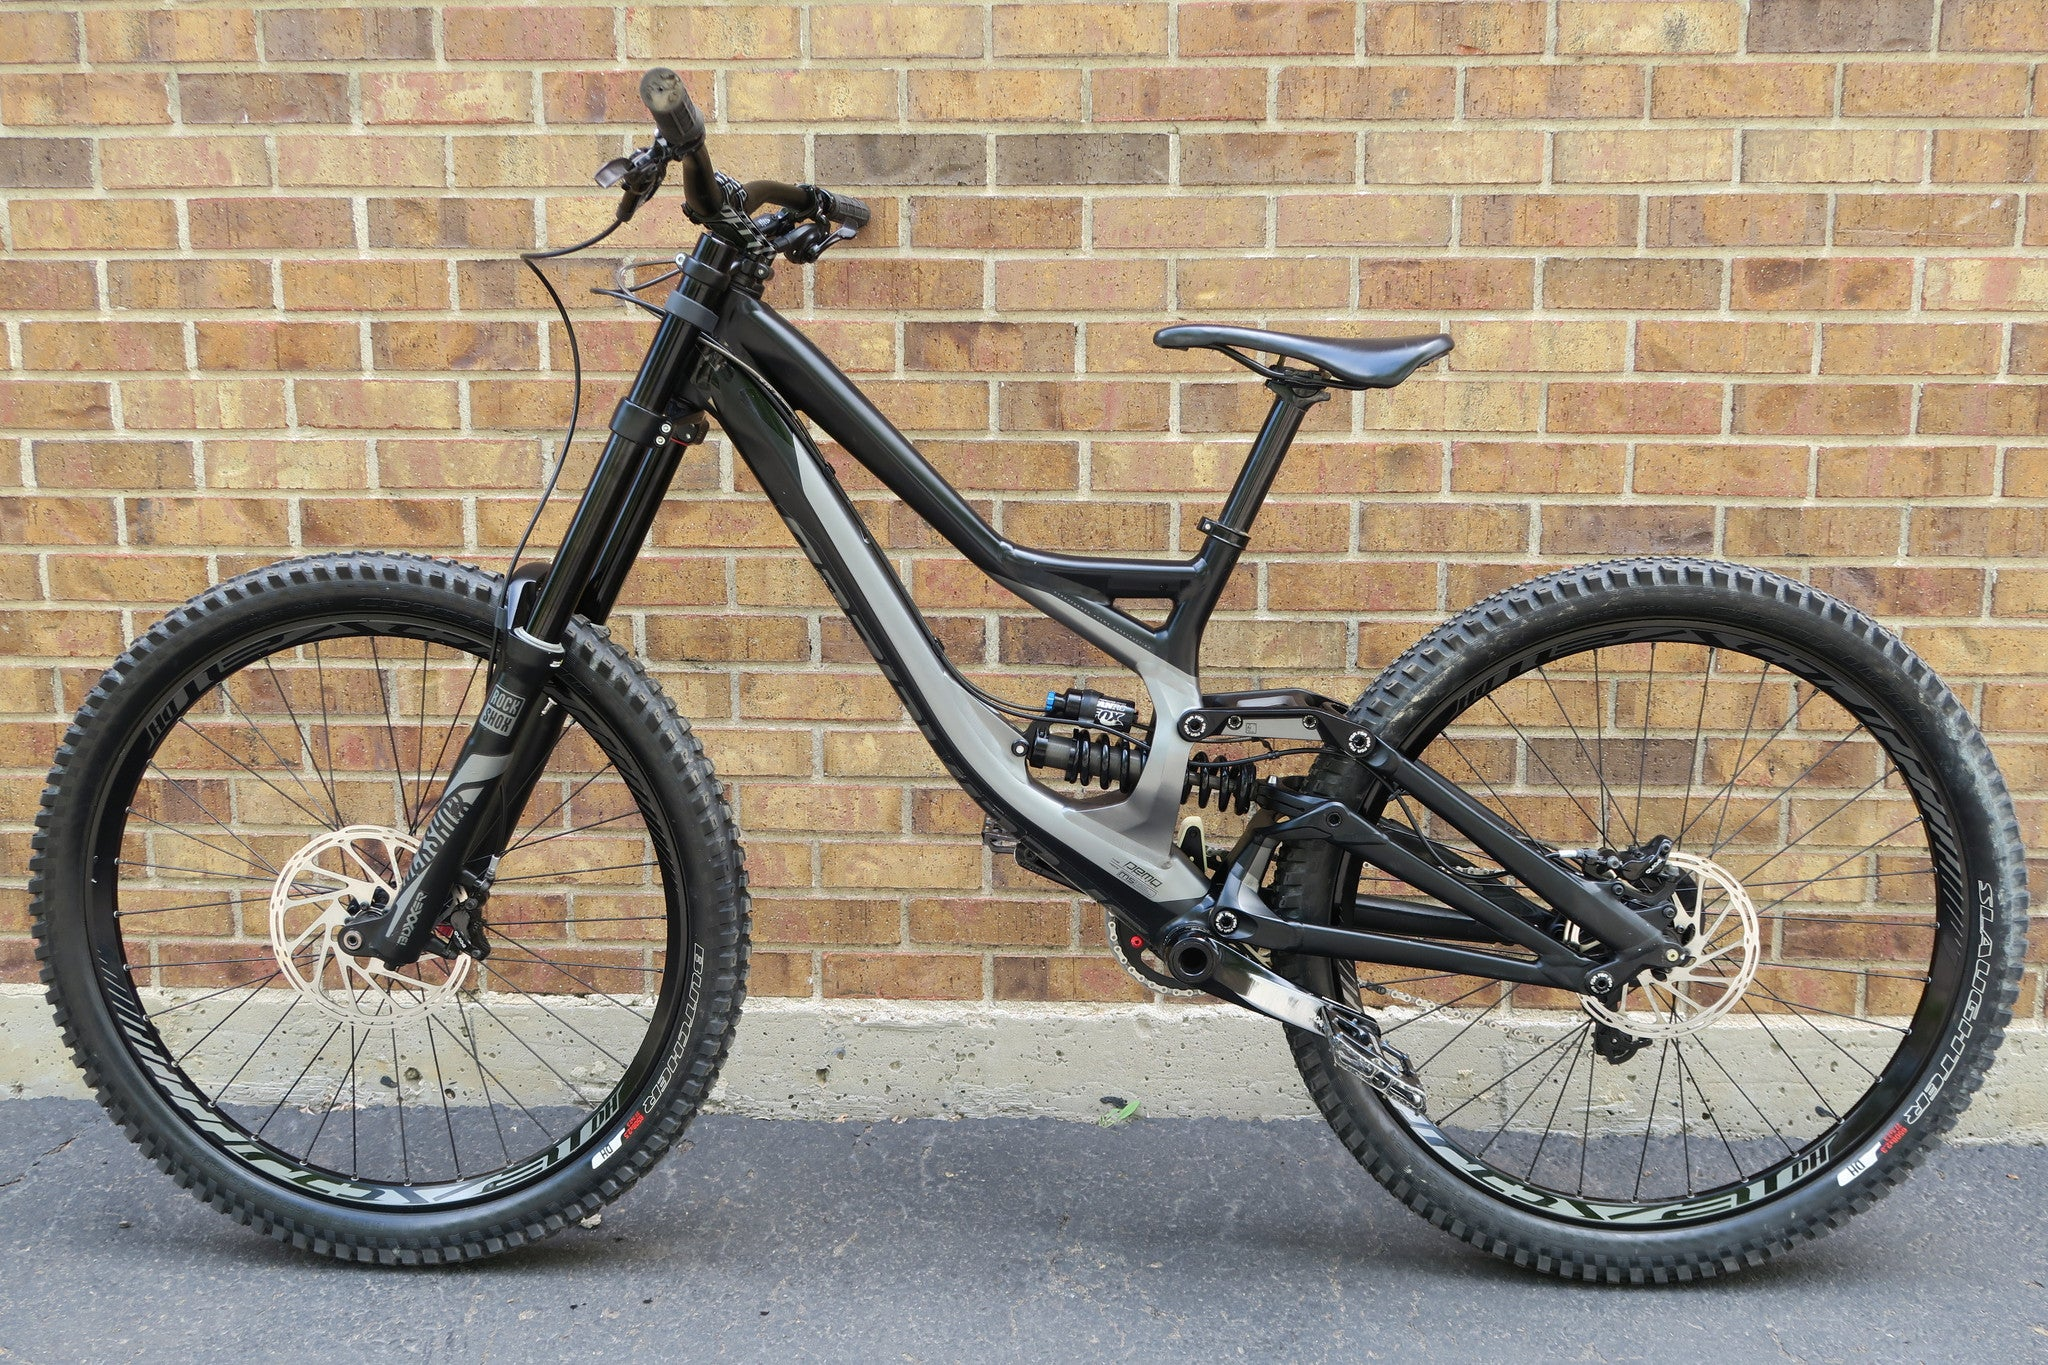 2015 DEMO 8 1 ALLOY 27.5